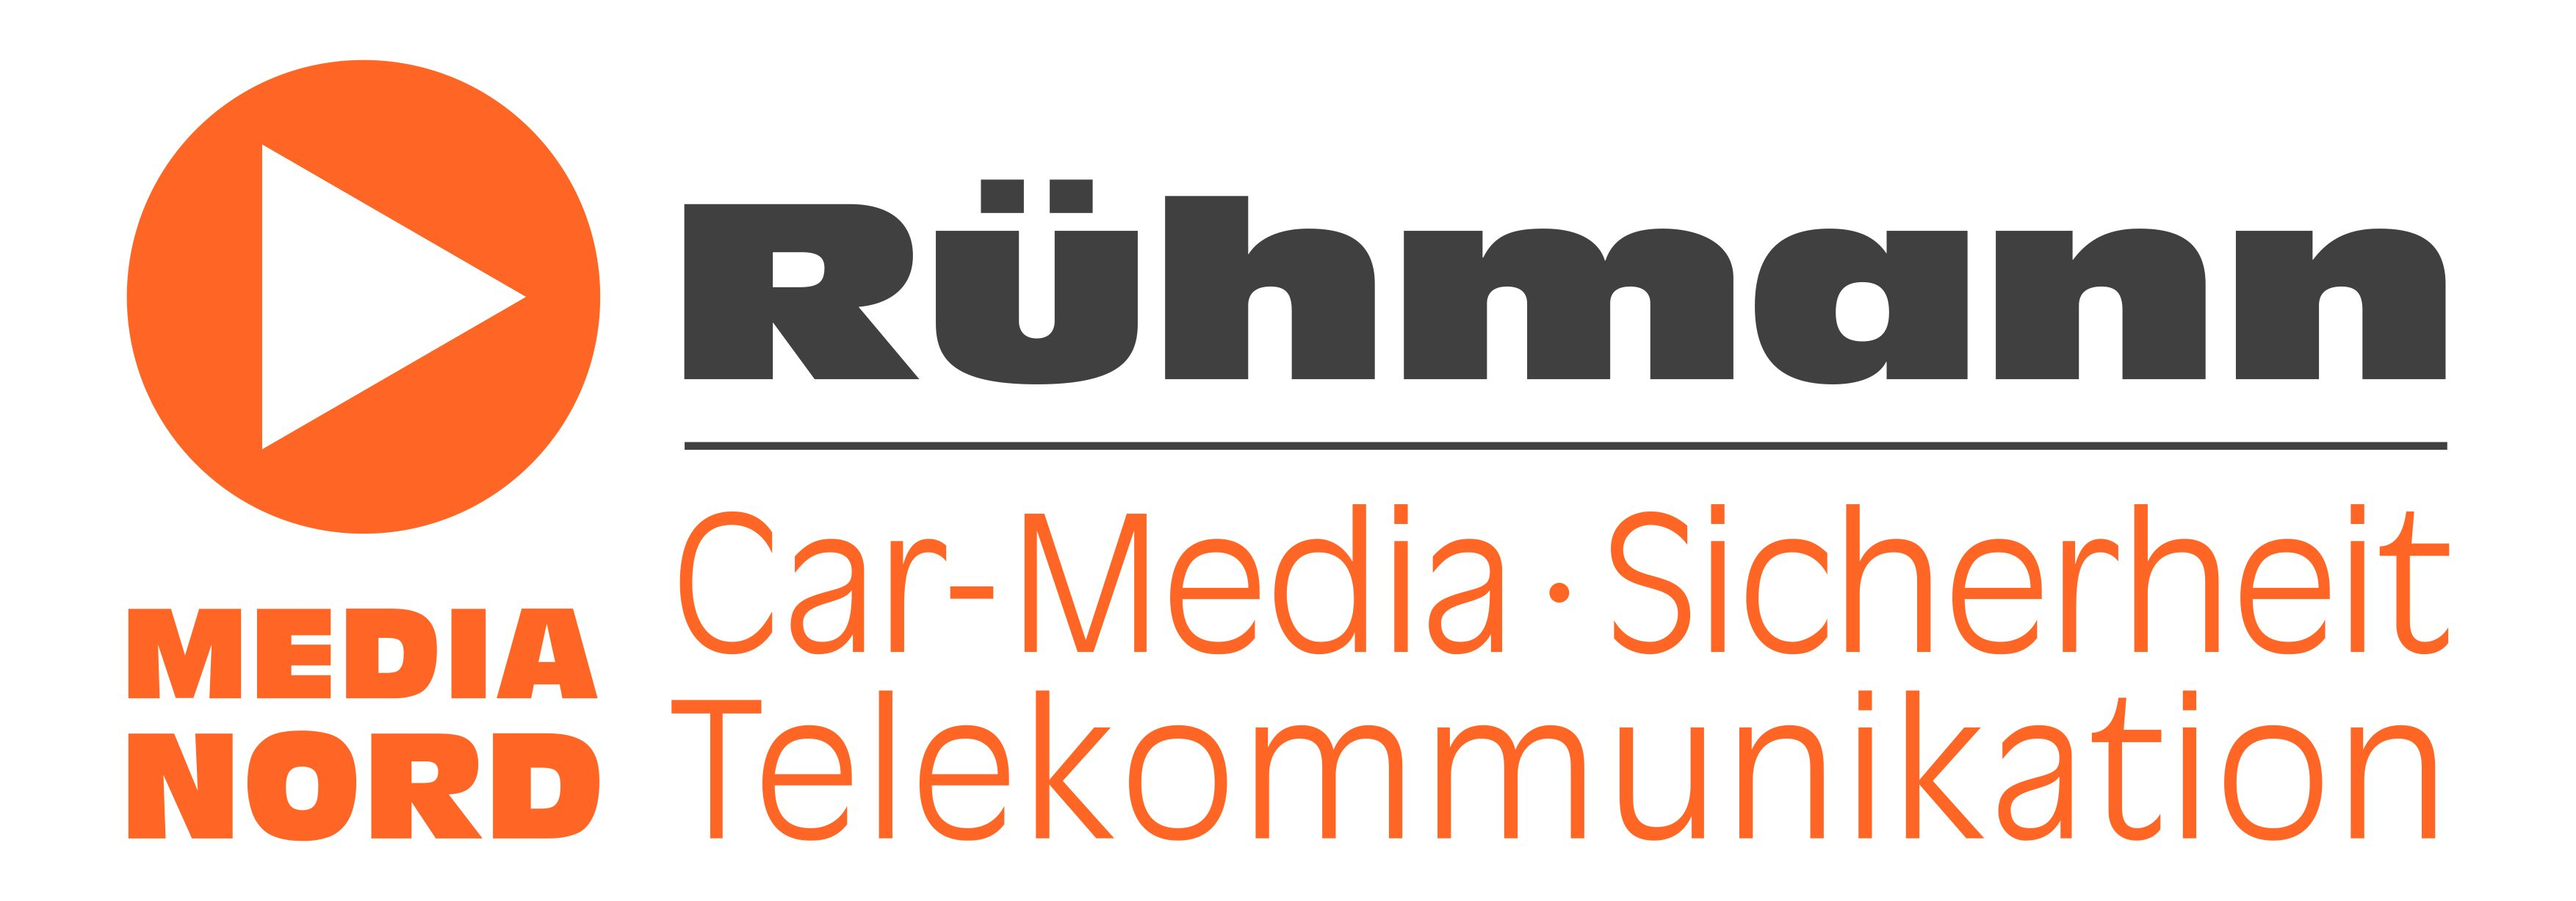 Rühmann Car-Media | Sicherheit | Telekommunikation